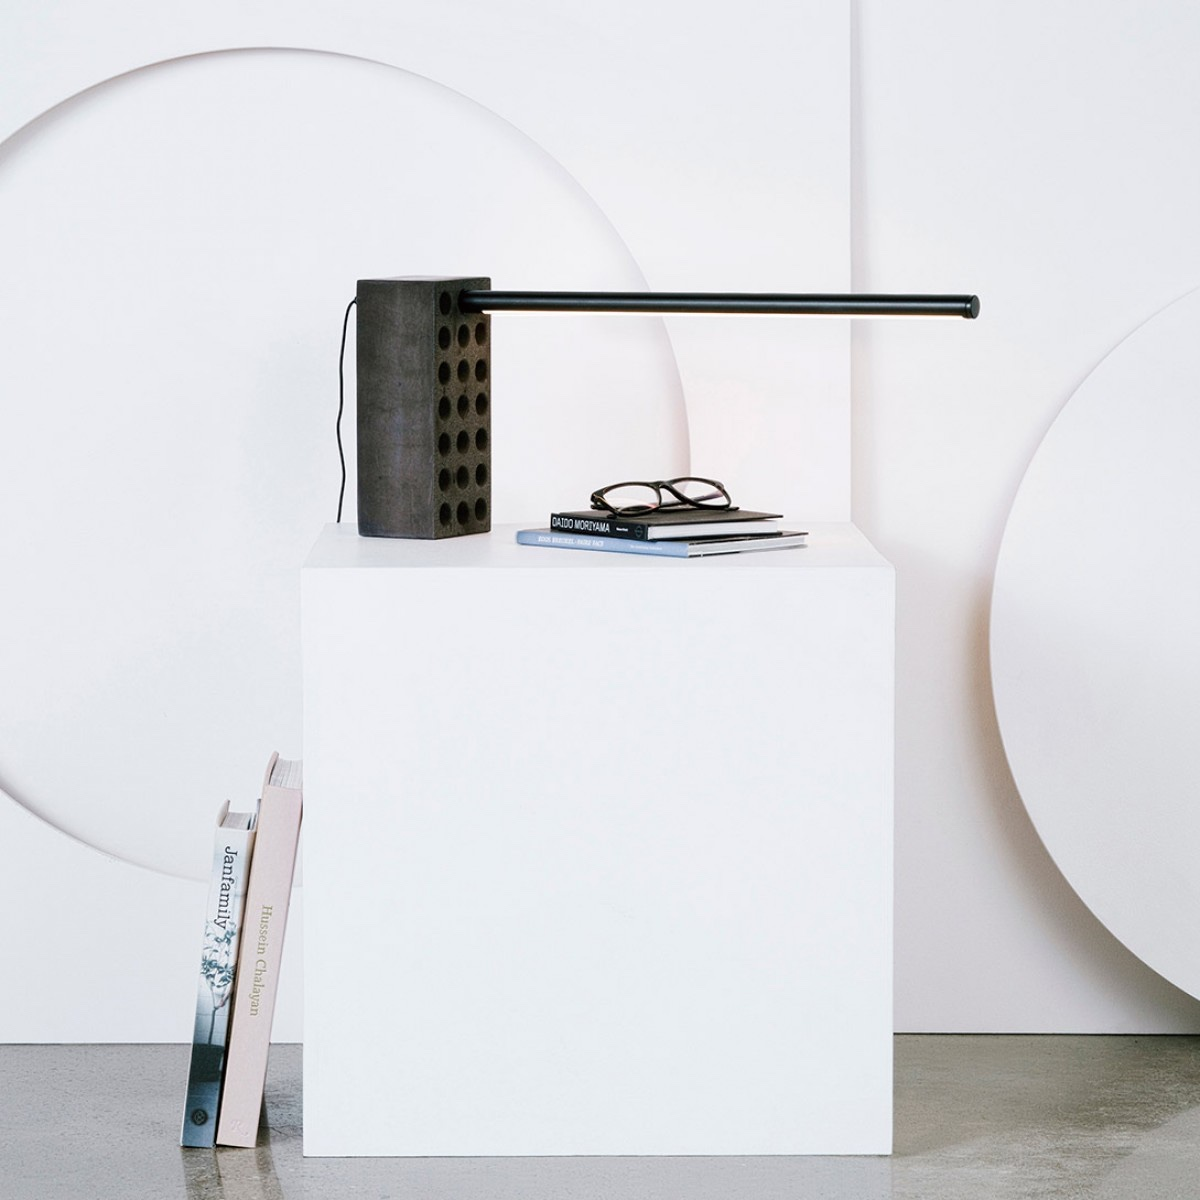 The Brick Lamp. An adjustable LED task lamp for Umbra Shift. Image courtesy of Umbra Shift.